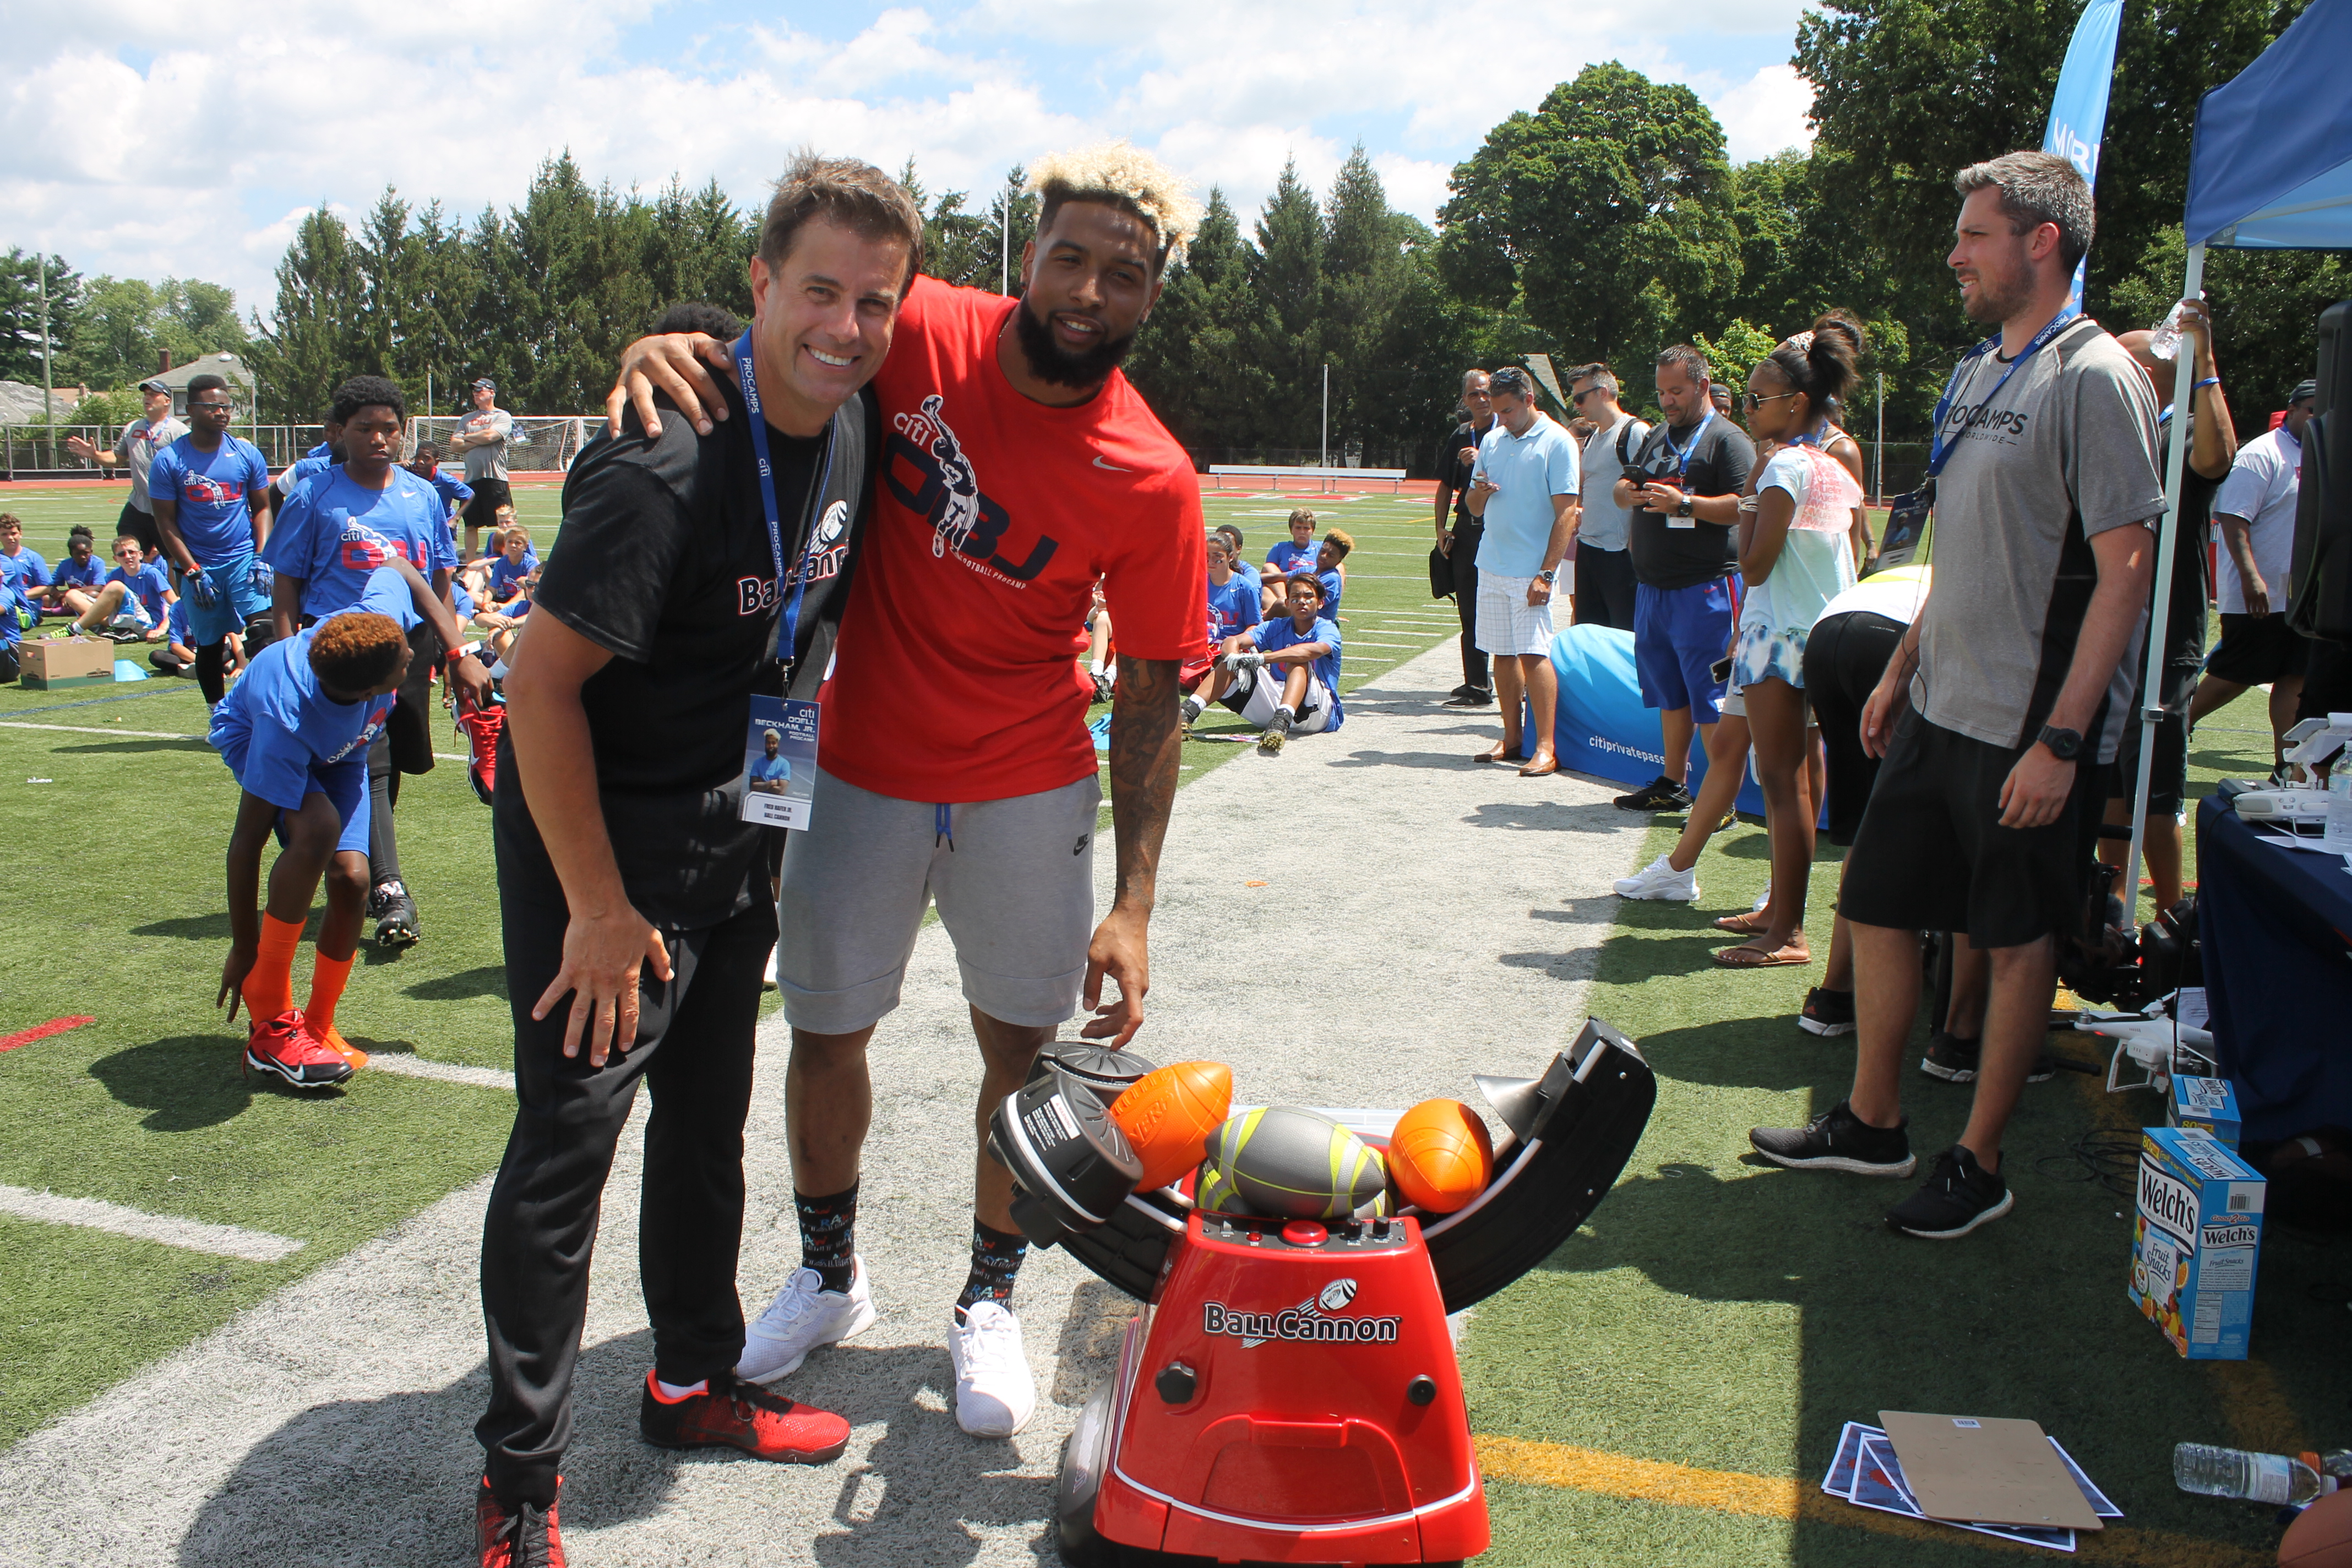 Fred Hafer, Jr. (President & CEO) and Odell Beckham, Jr. (NY Giants Wide Receiver) pose with the Ball Cannon at Boonton Highschool on July 26th, 2016.